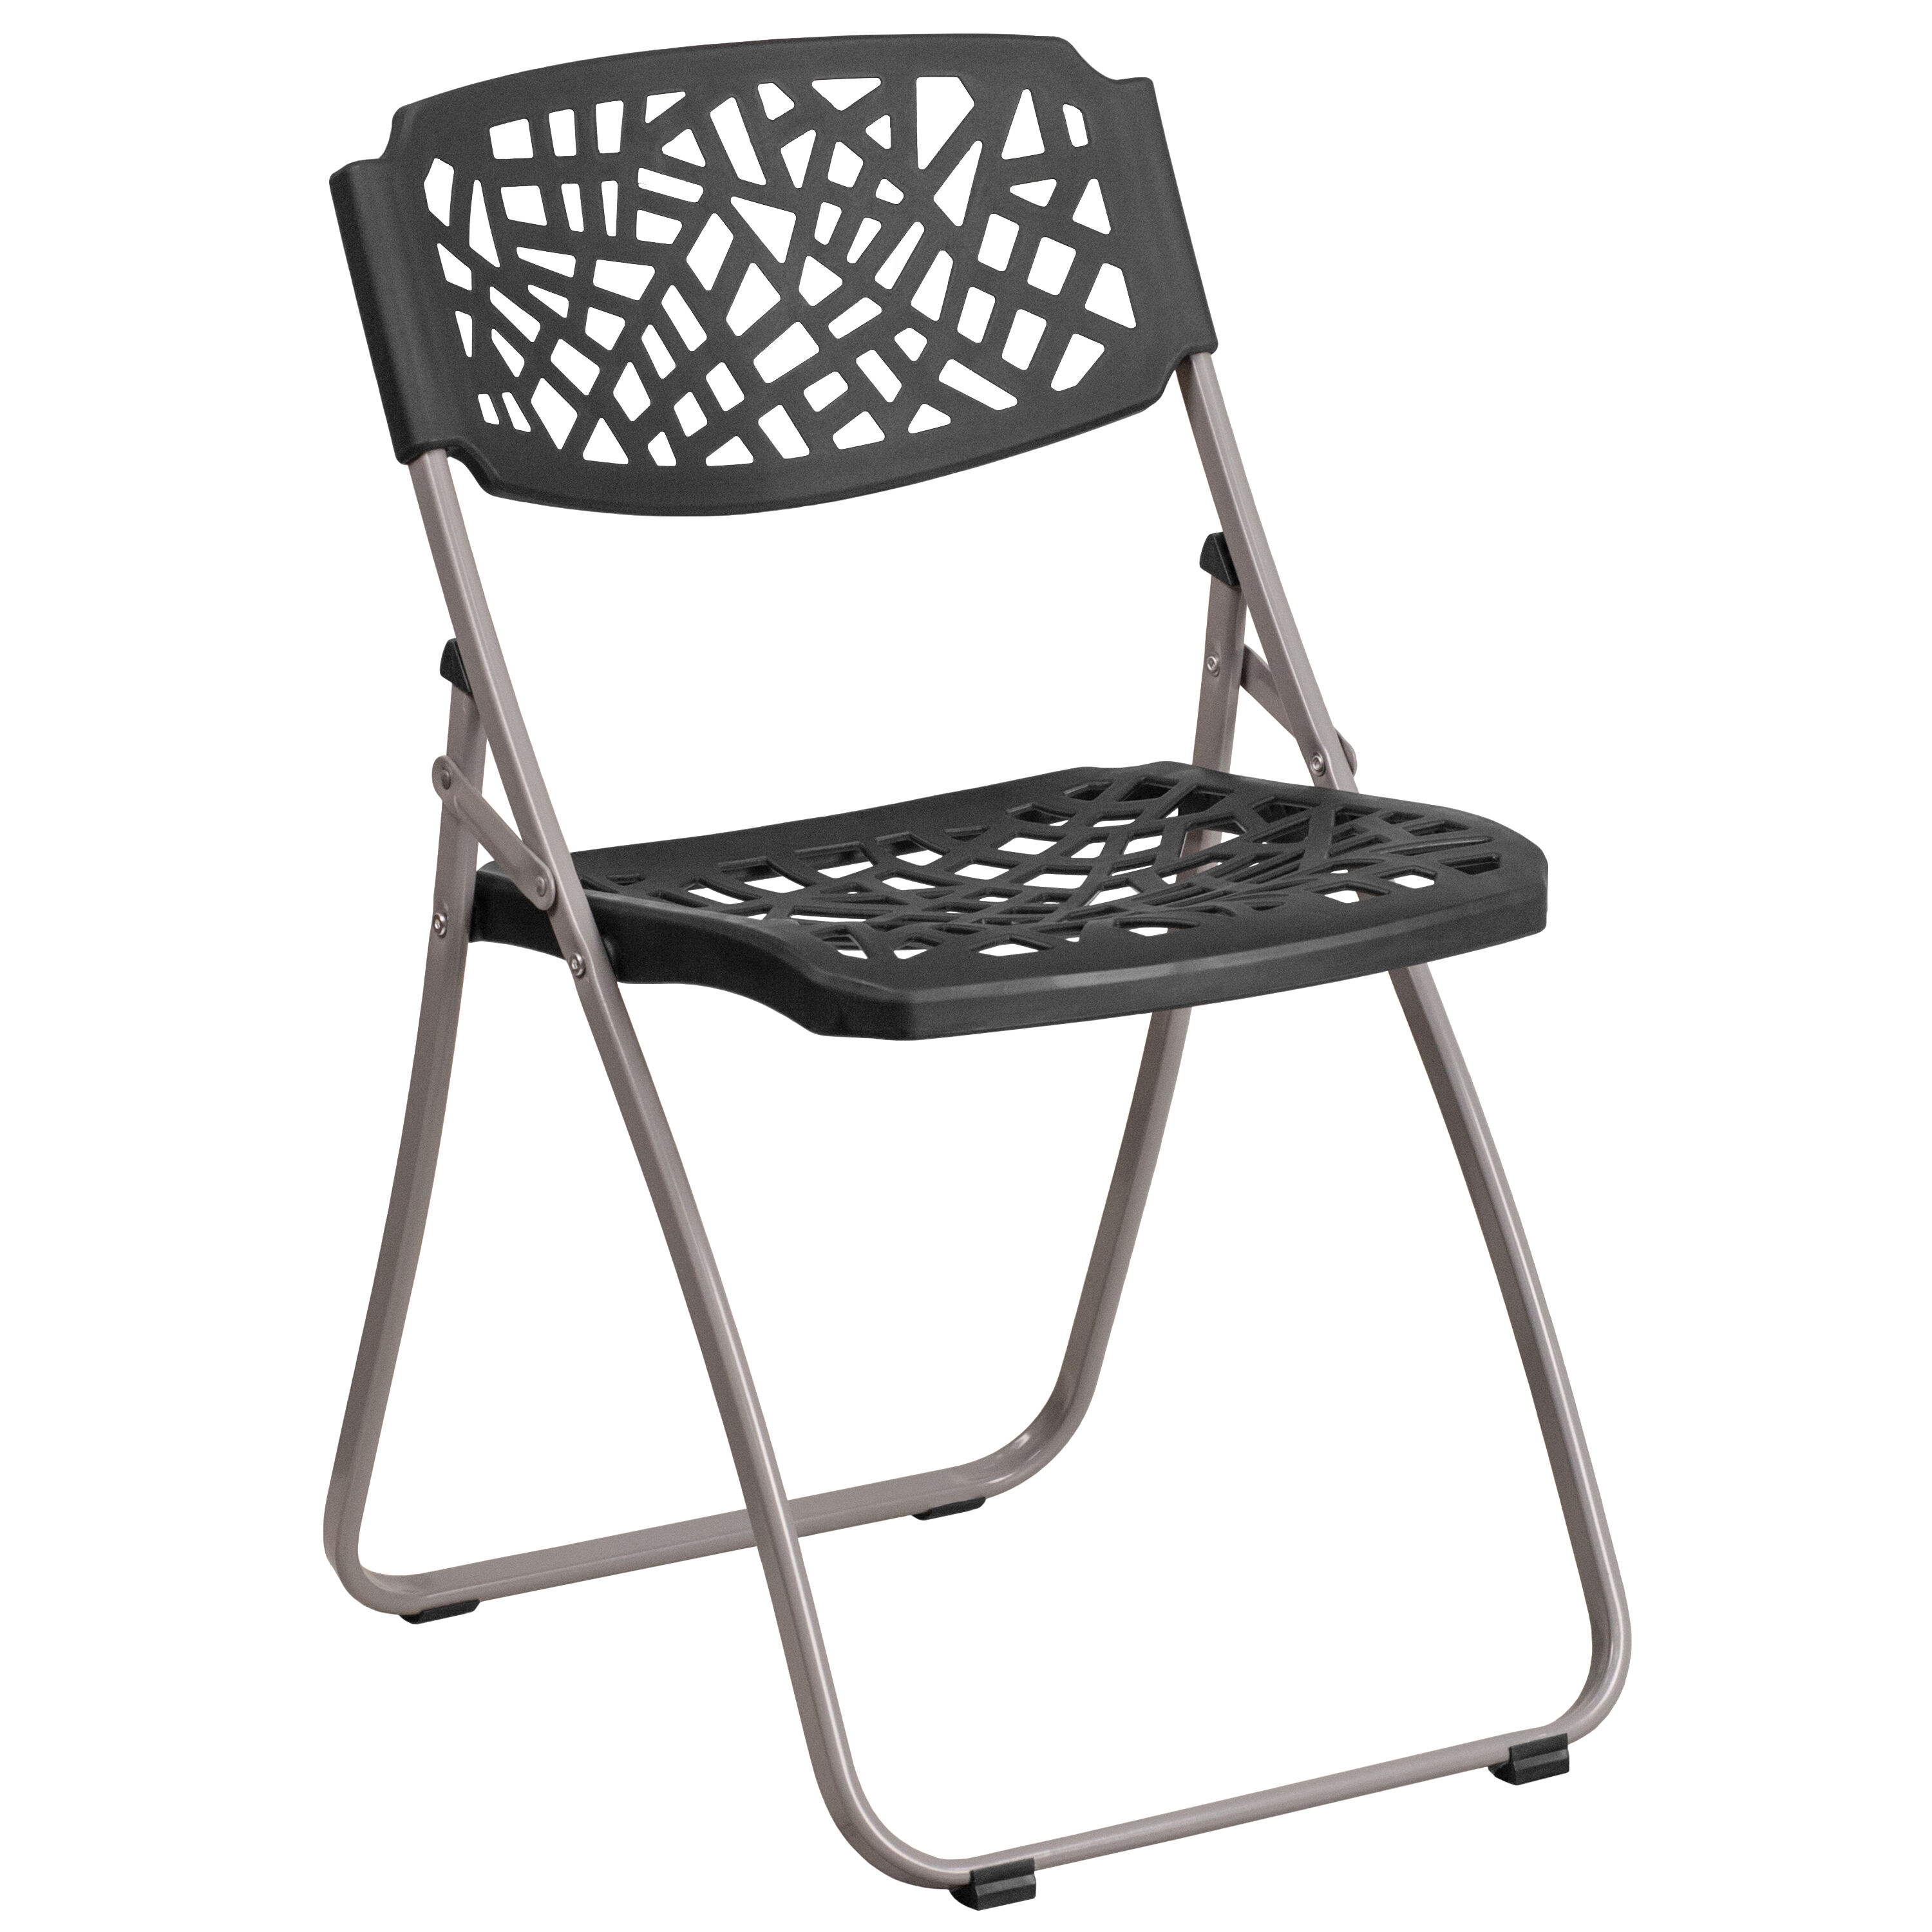 Beau Capacity Black Plastic Folding Chair With Silver Frame Is ...